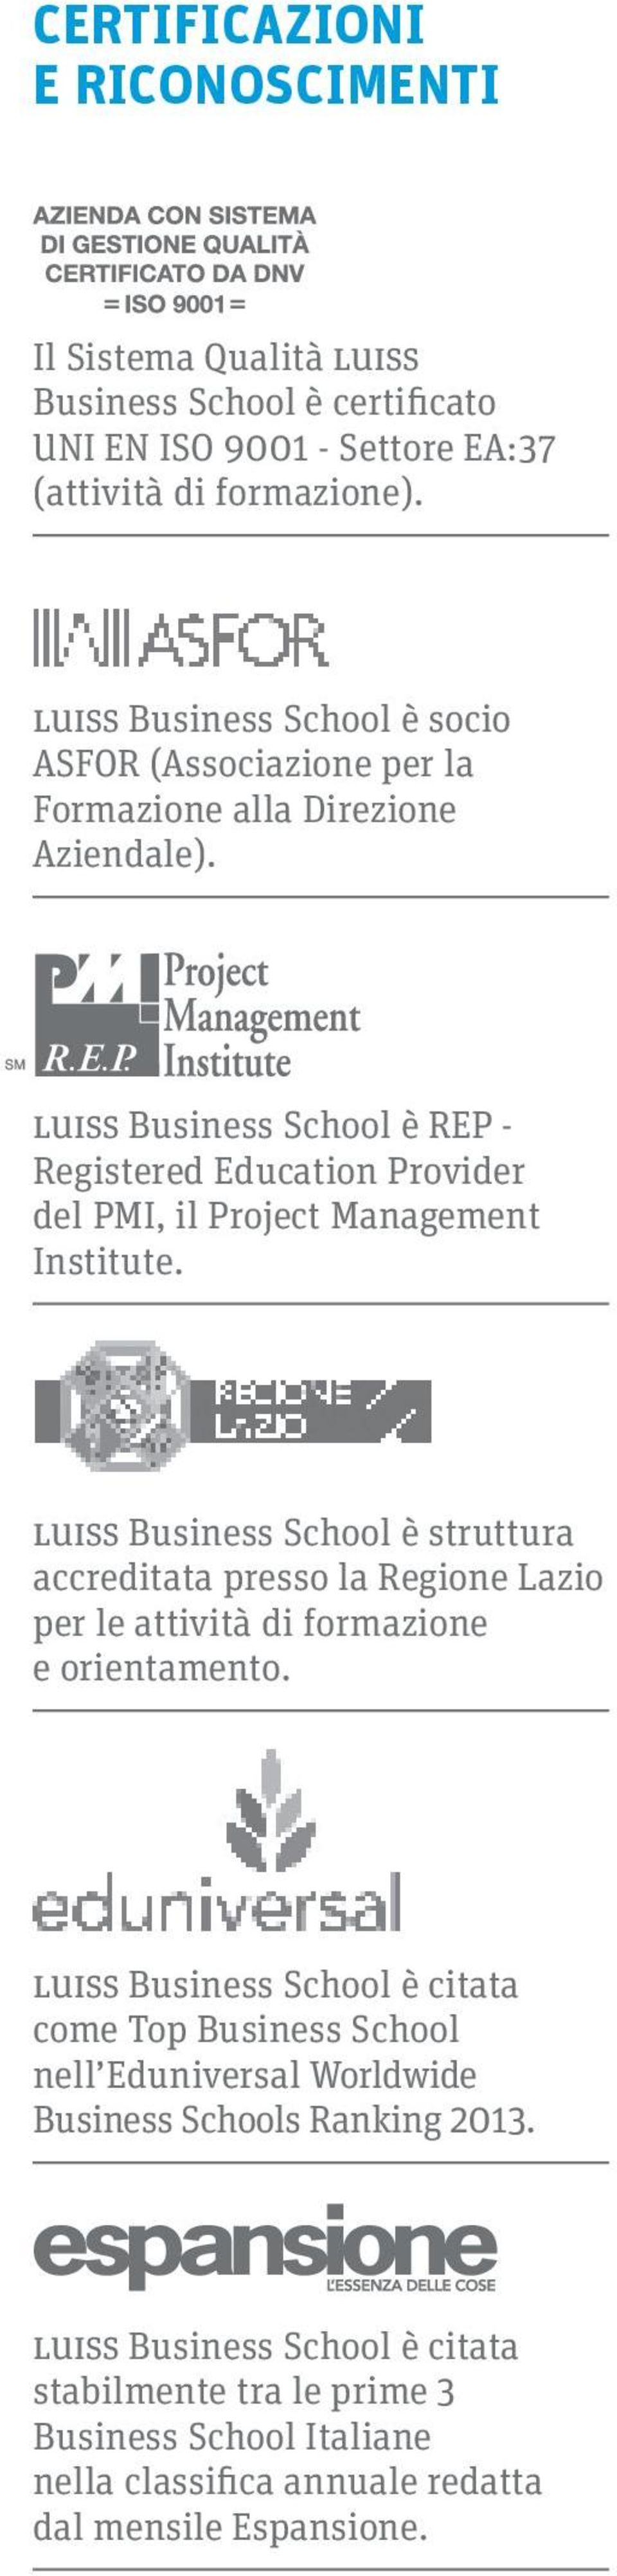 luiss Business School è REP - Registered Education Provider del PMI, il Project Management Institute.